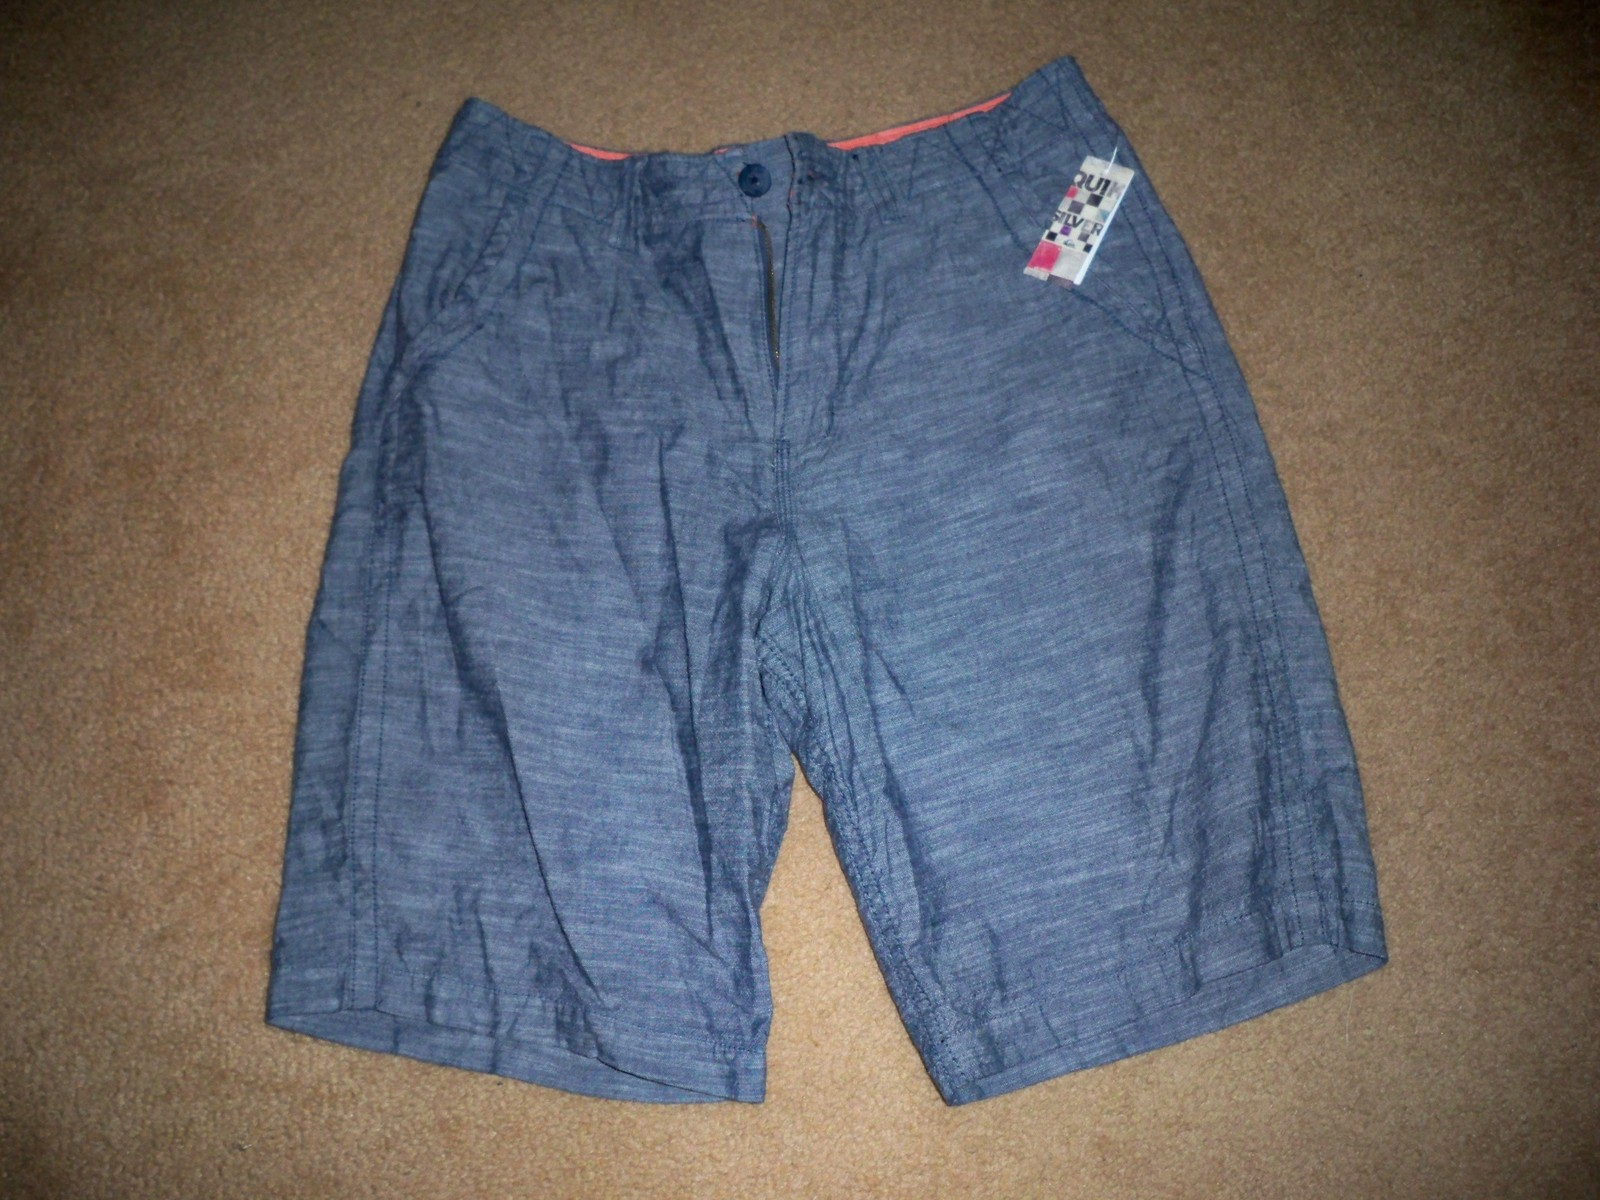 Primary image for MEN'S GUYS QUIKSILVER CHAMBRAY DENIM BLUE SHORTS MULTI POCKET NEW